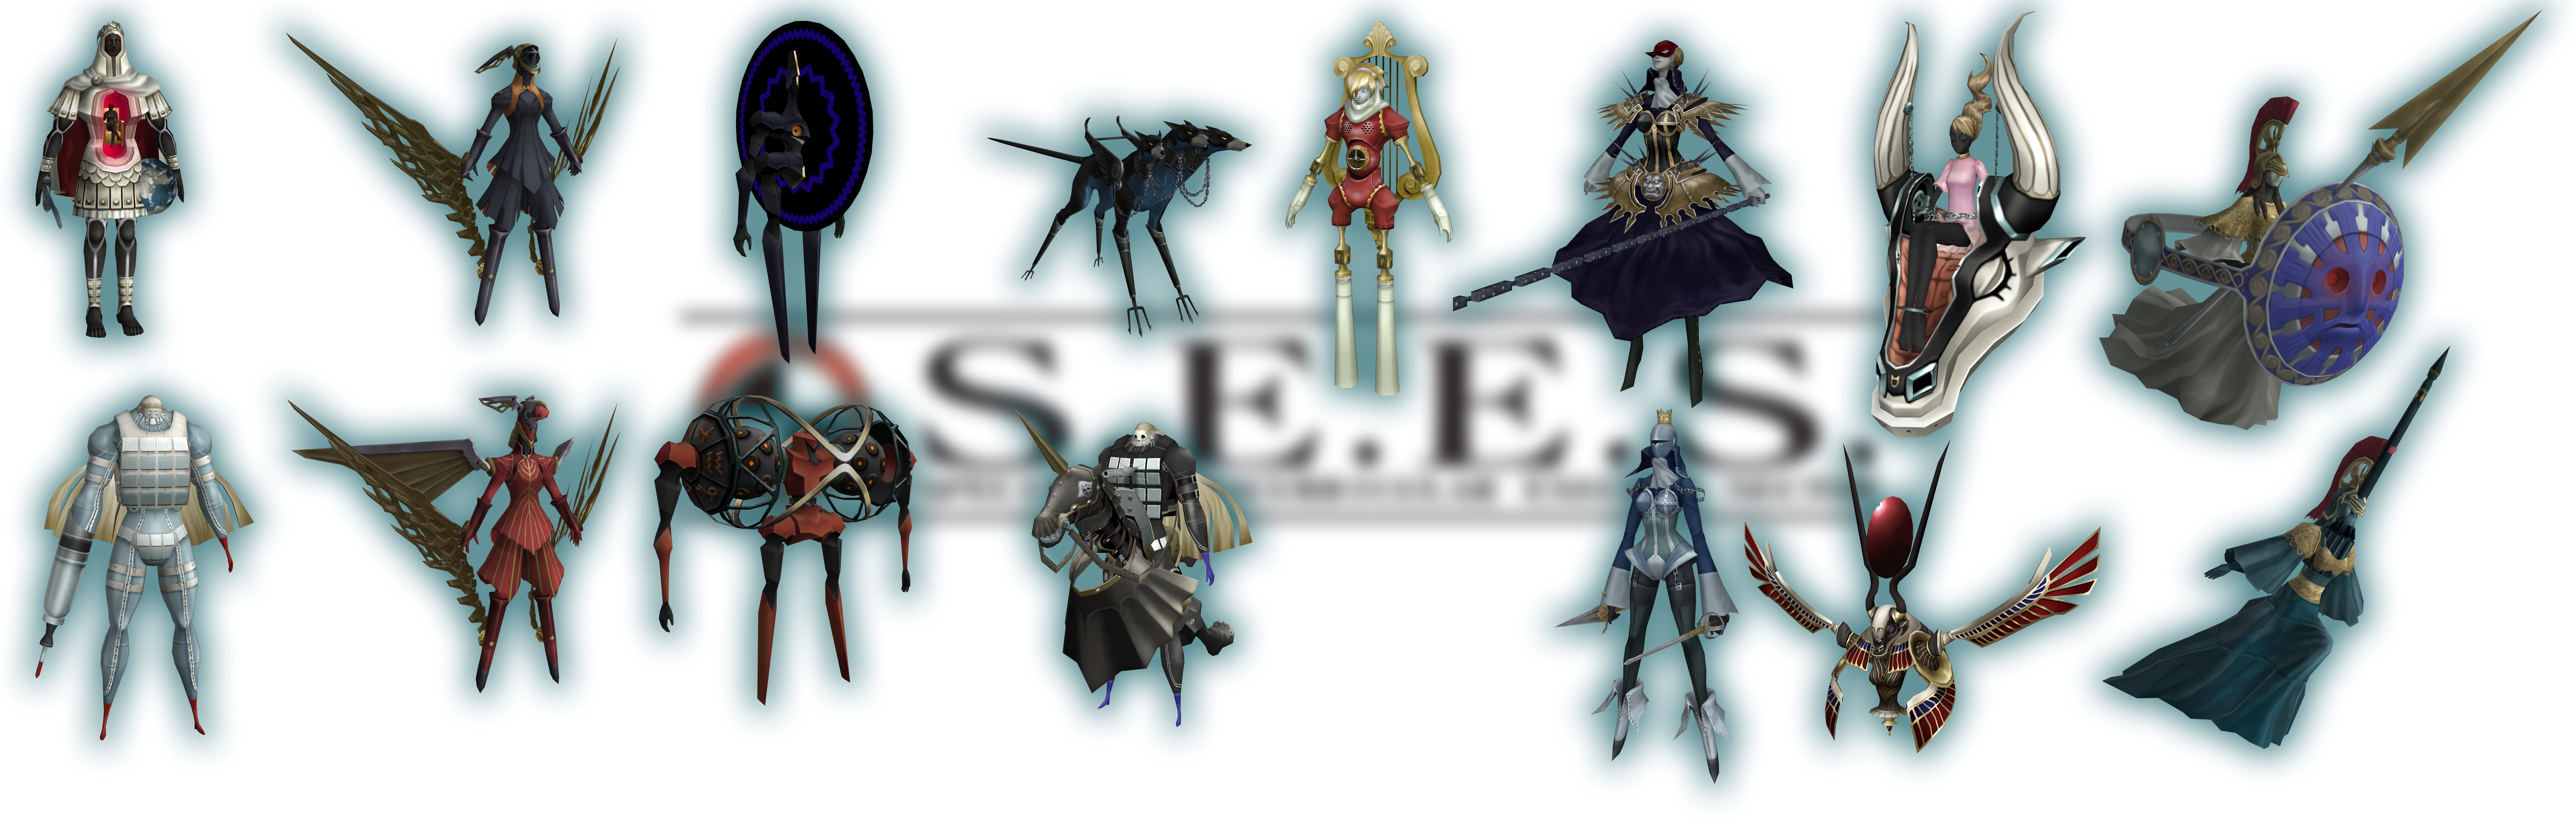 Persona 3 Personas pack [XPS](DL) by NecroCainALX on DeviantArt